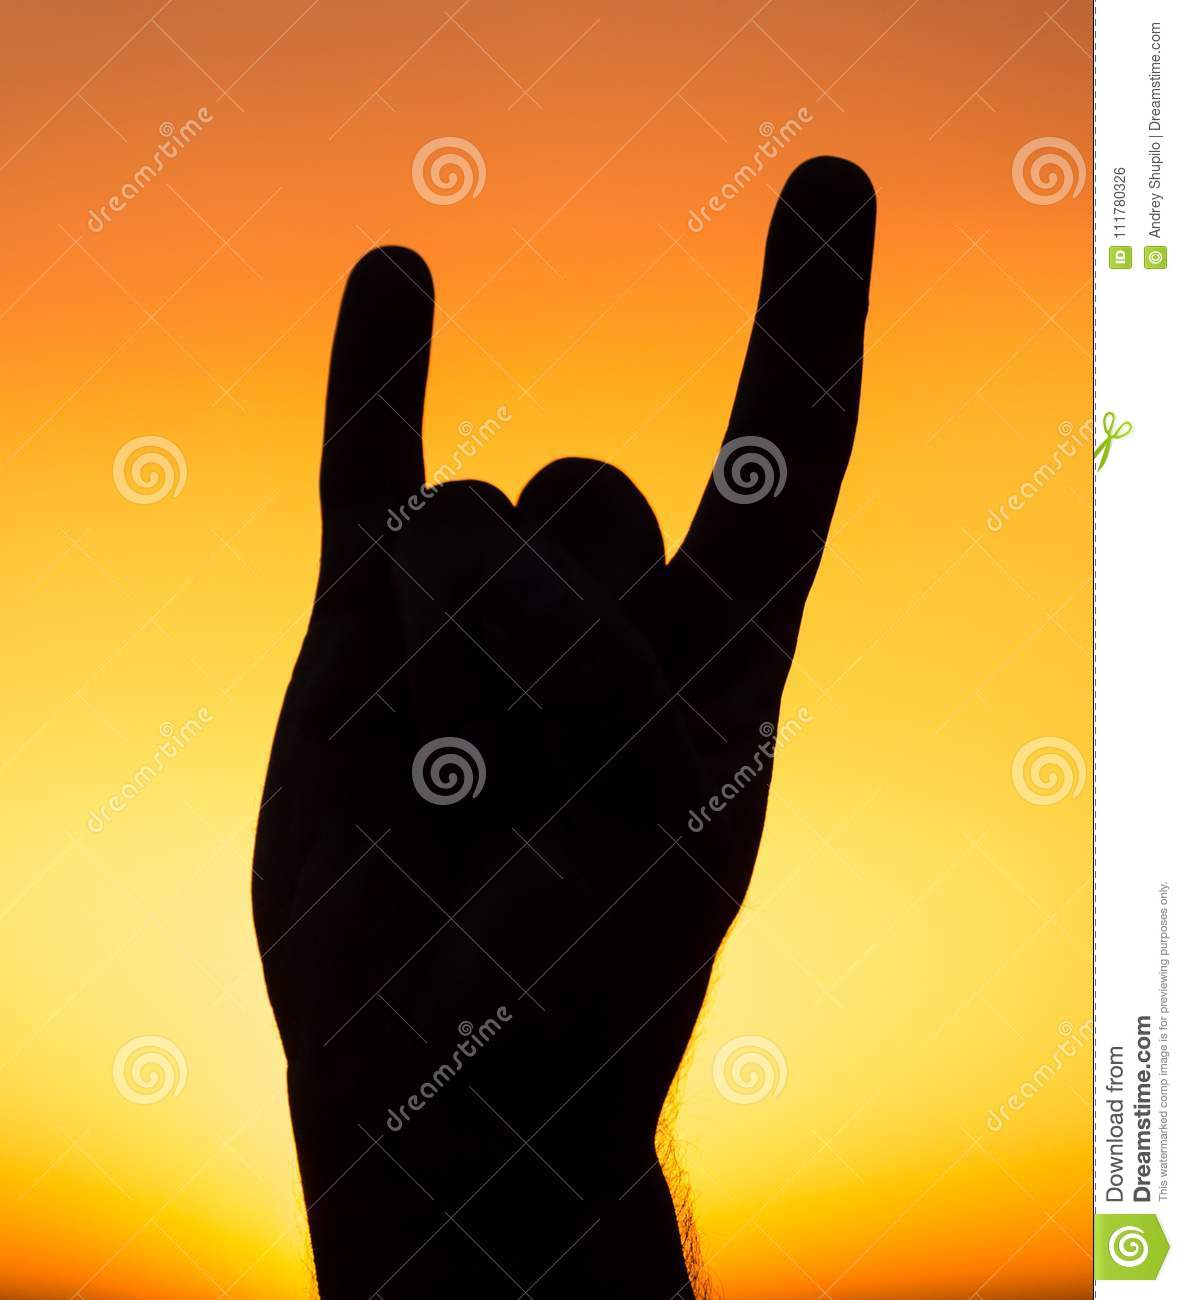 Silhouette of hand at sunset